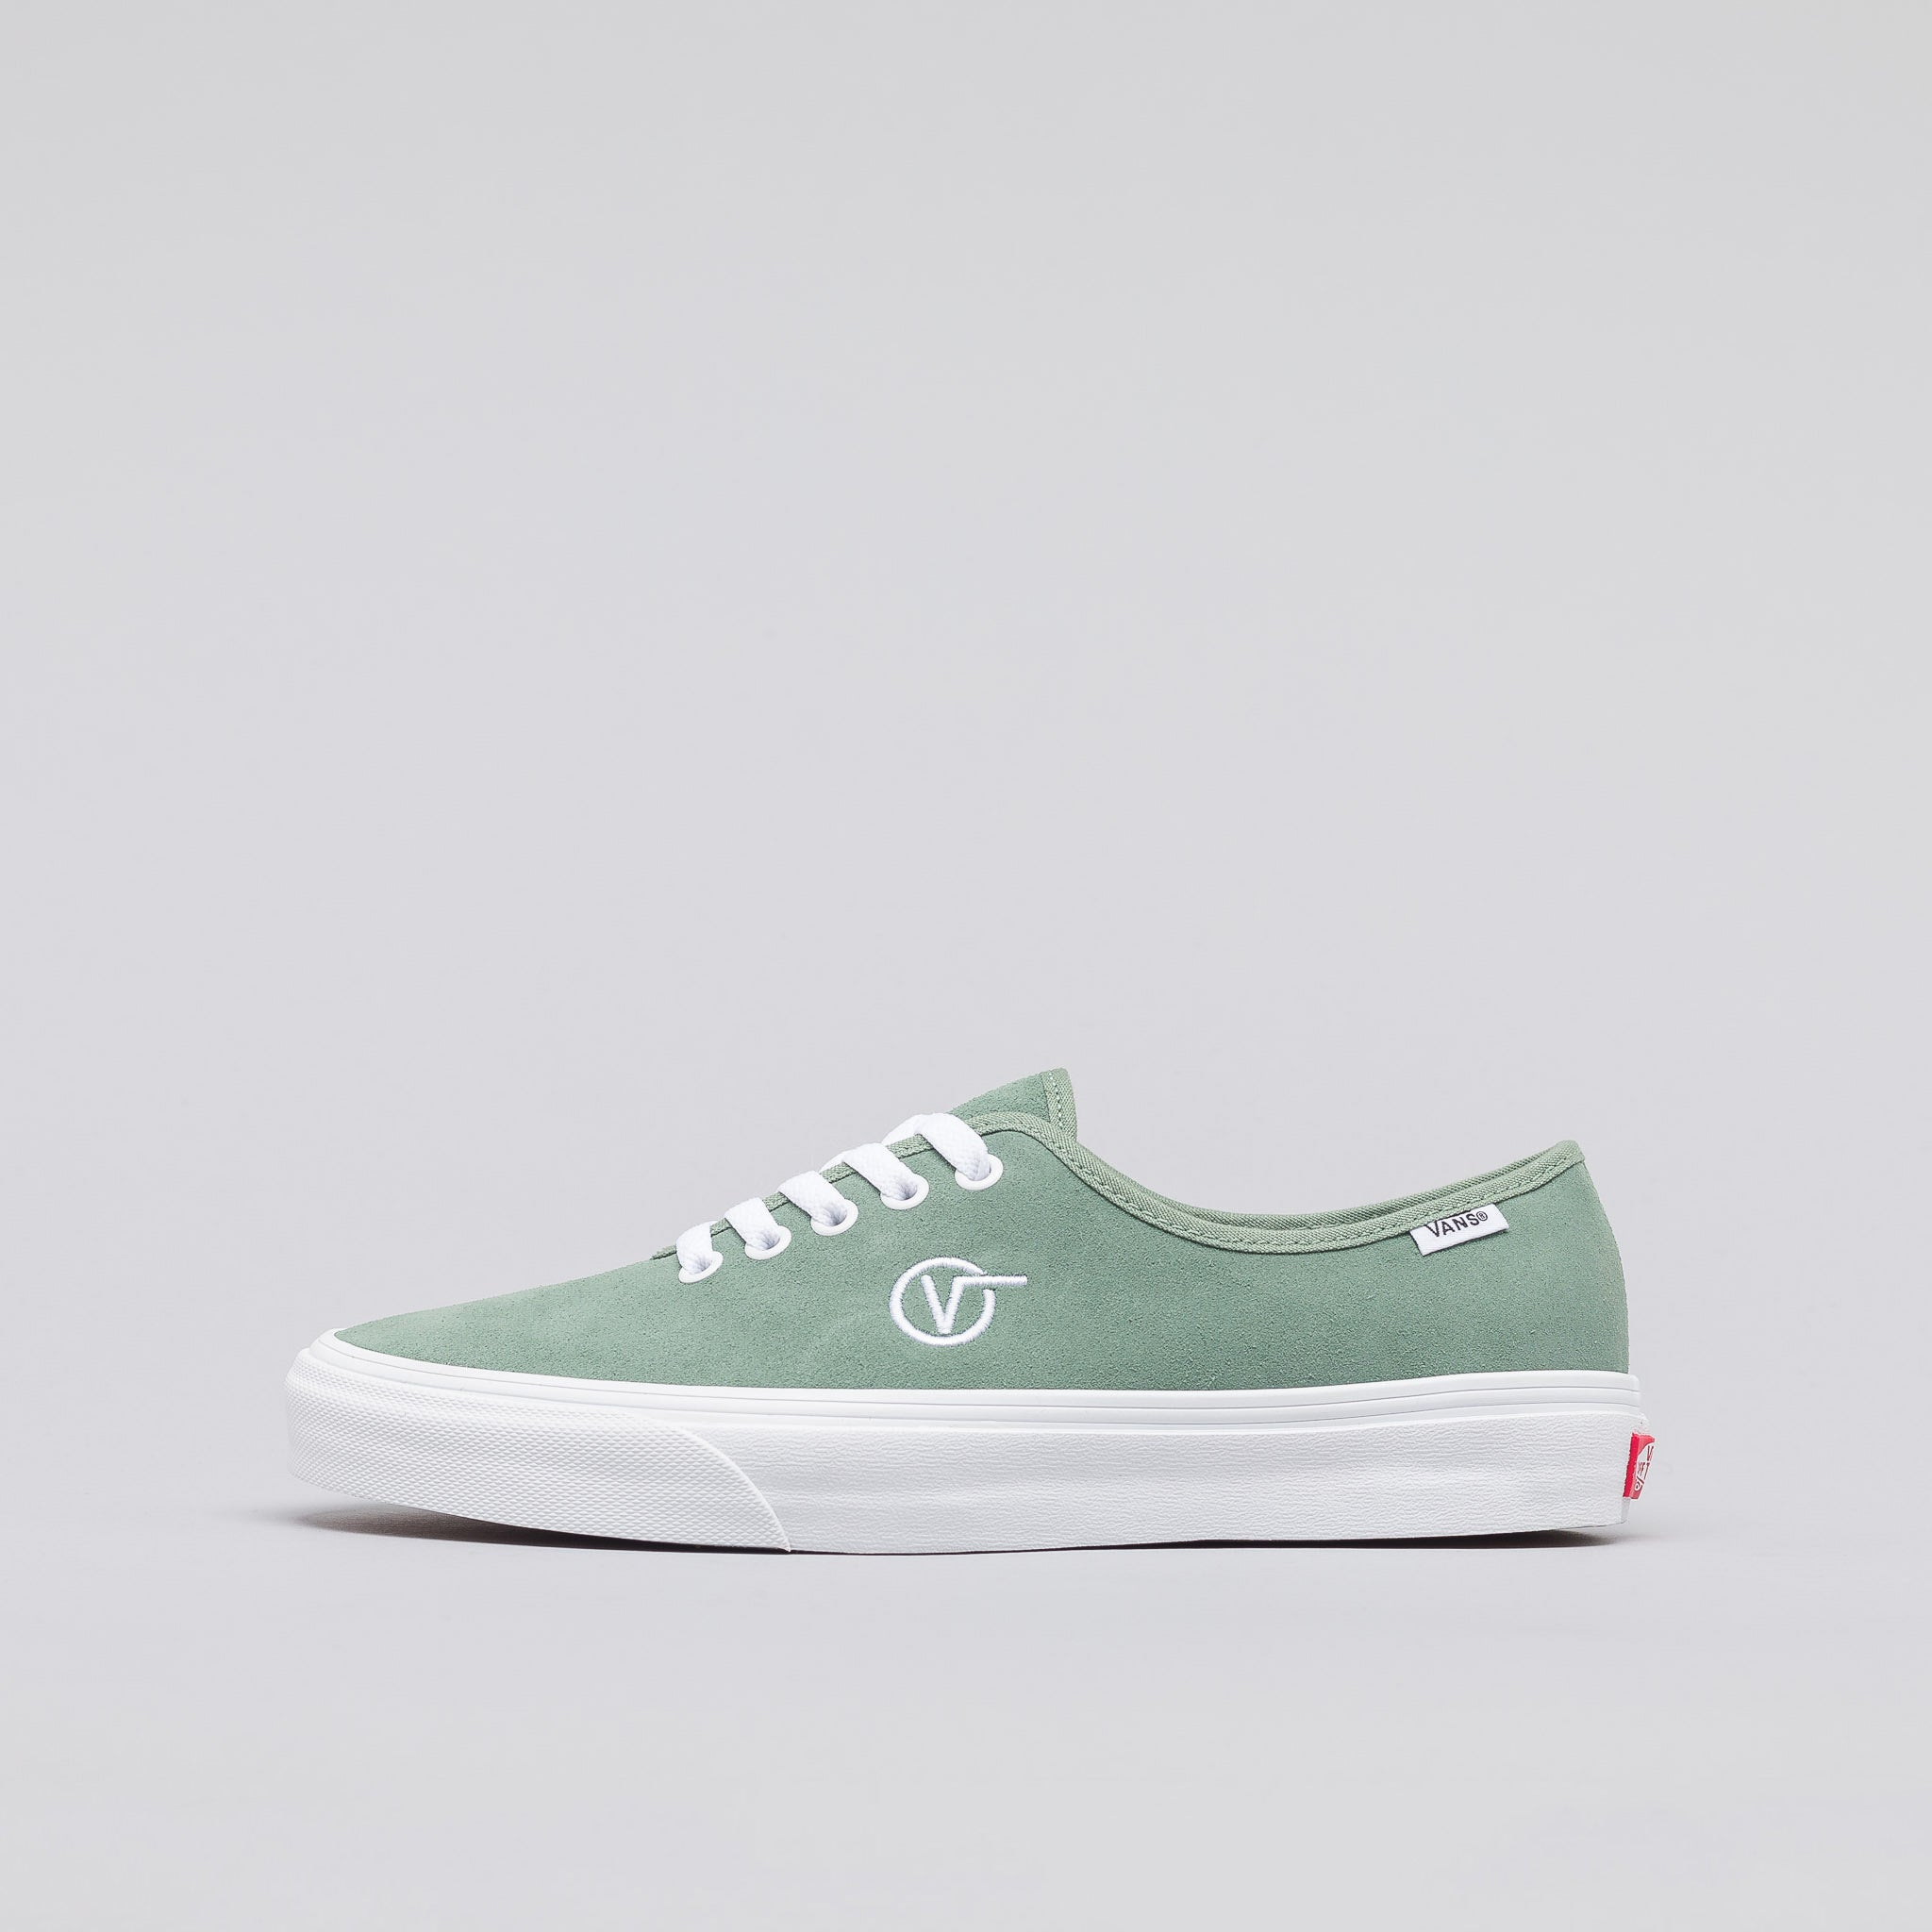 Authentic One Piece Circle V in Green Bay Suede